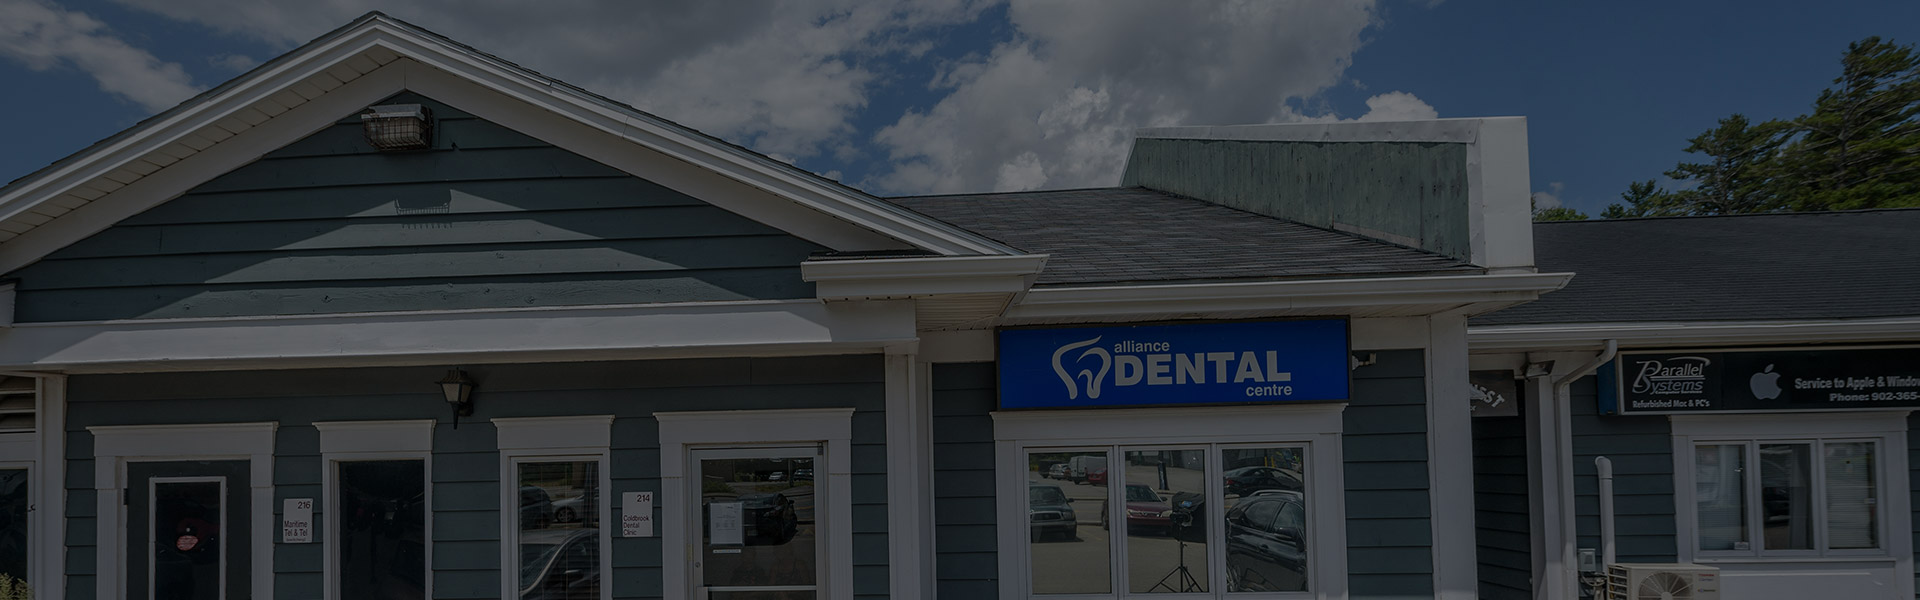 alliance dental coldbrook building